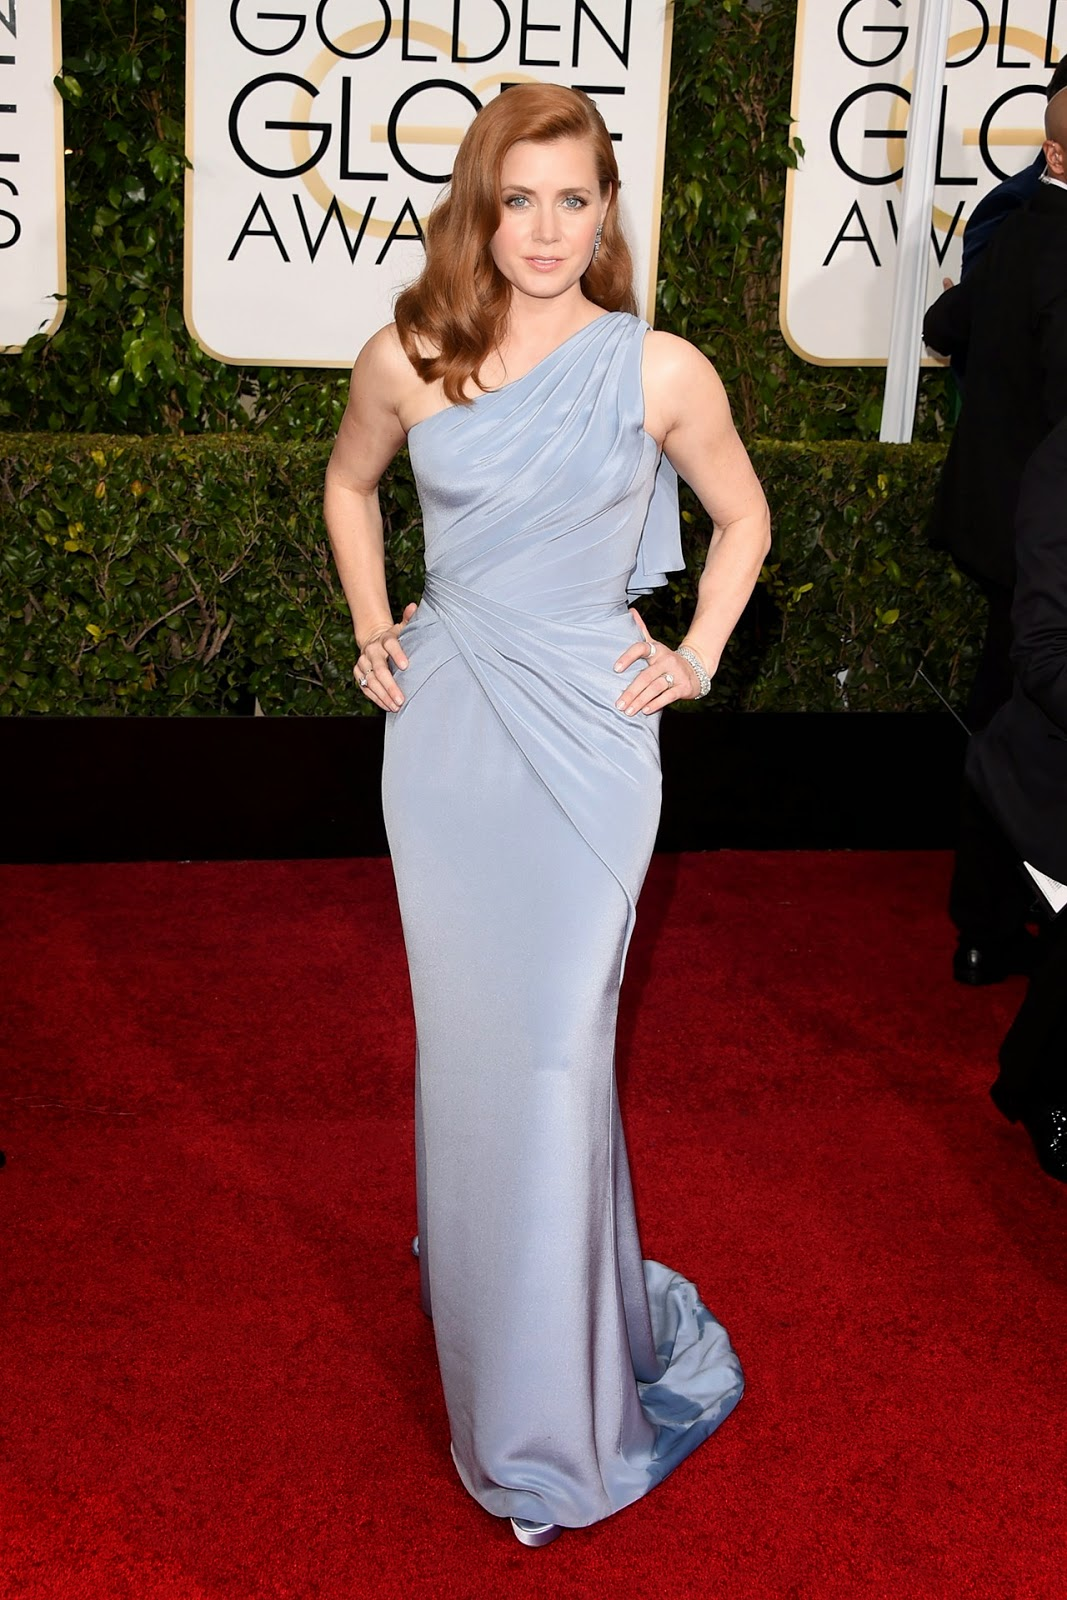 Amy Adams wore a Versace gown at the Golden Globe Awards 2015